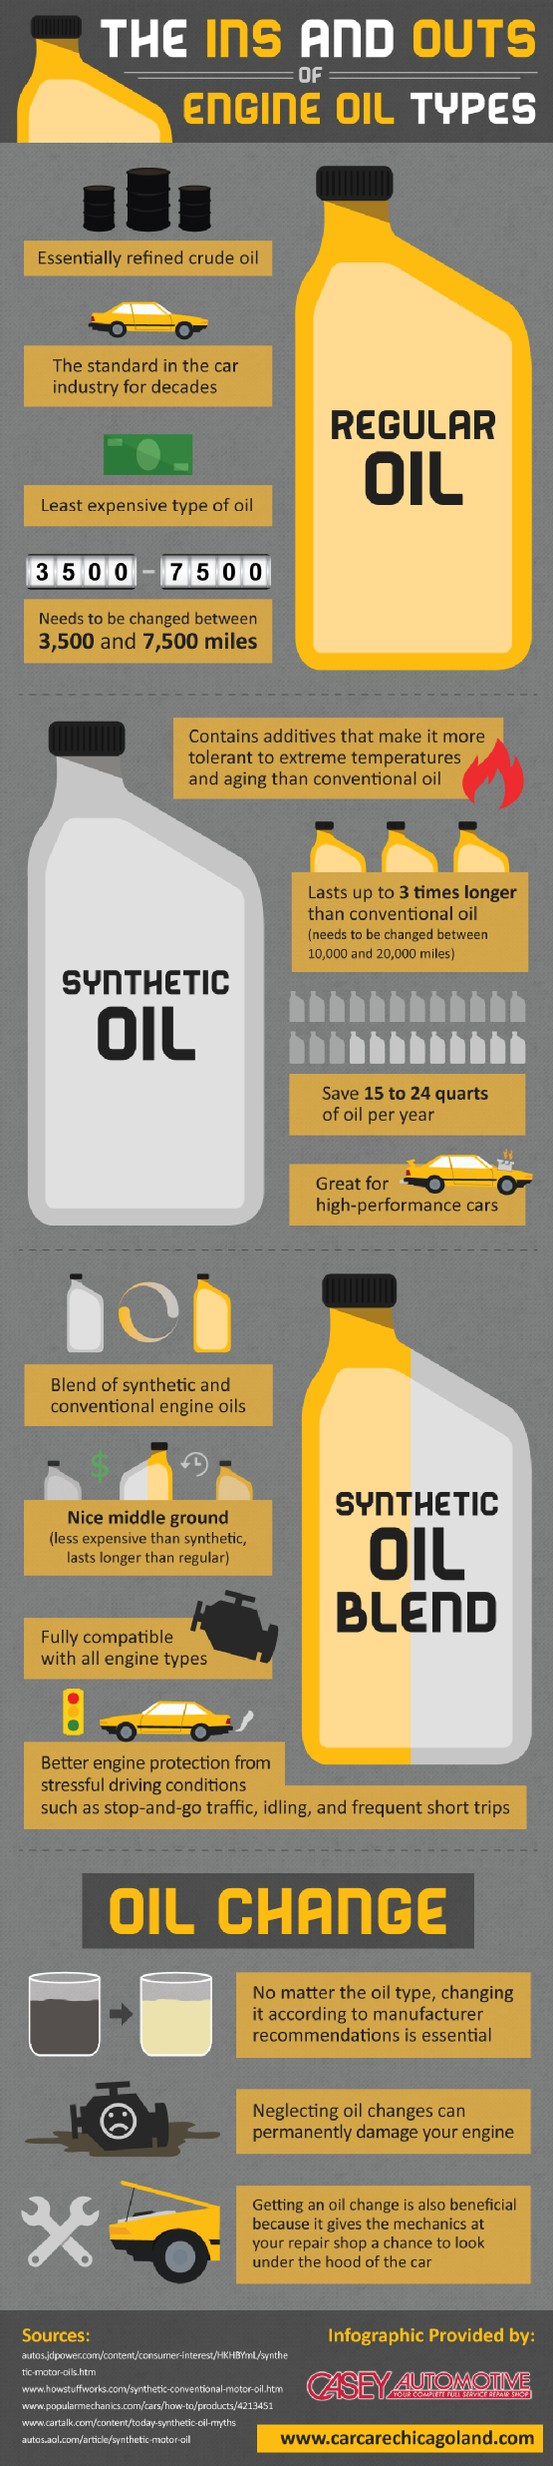 synthetic blend oil is a nice middle ground between